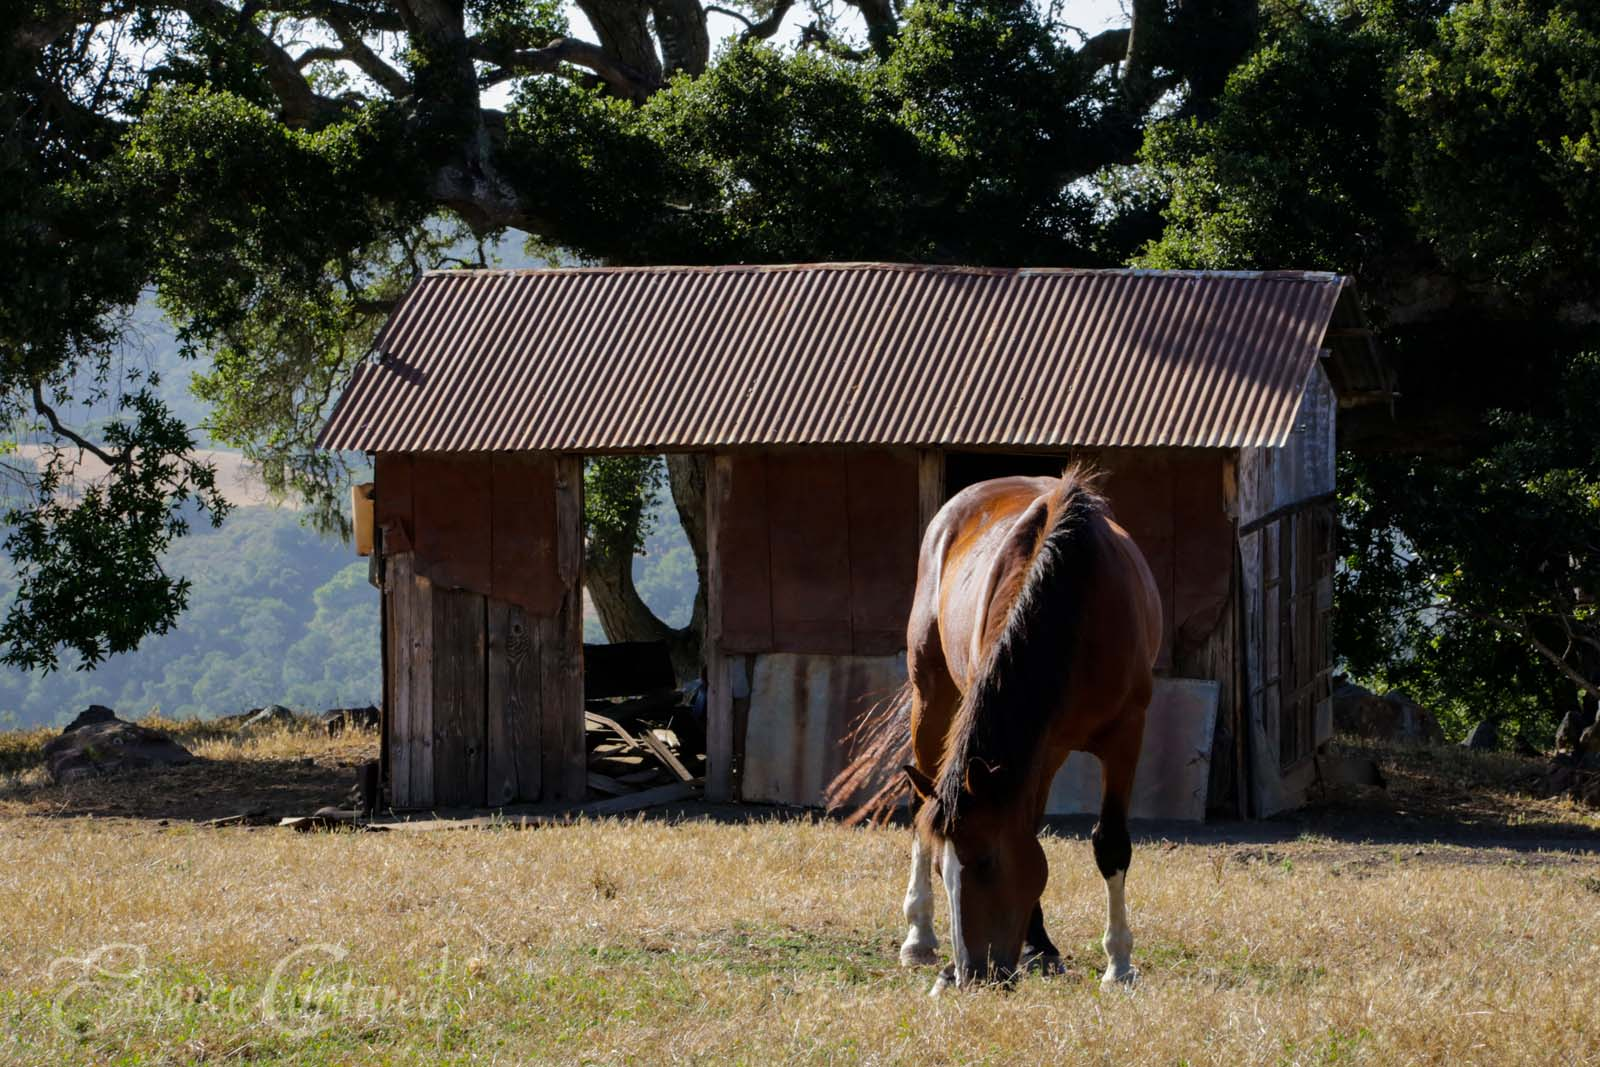 brown horse grazing in front of old shed with oak tree behind